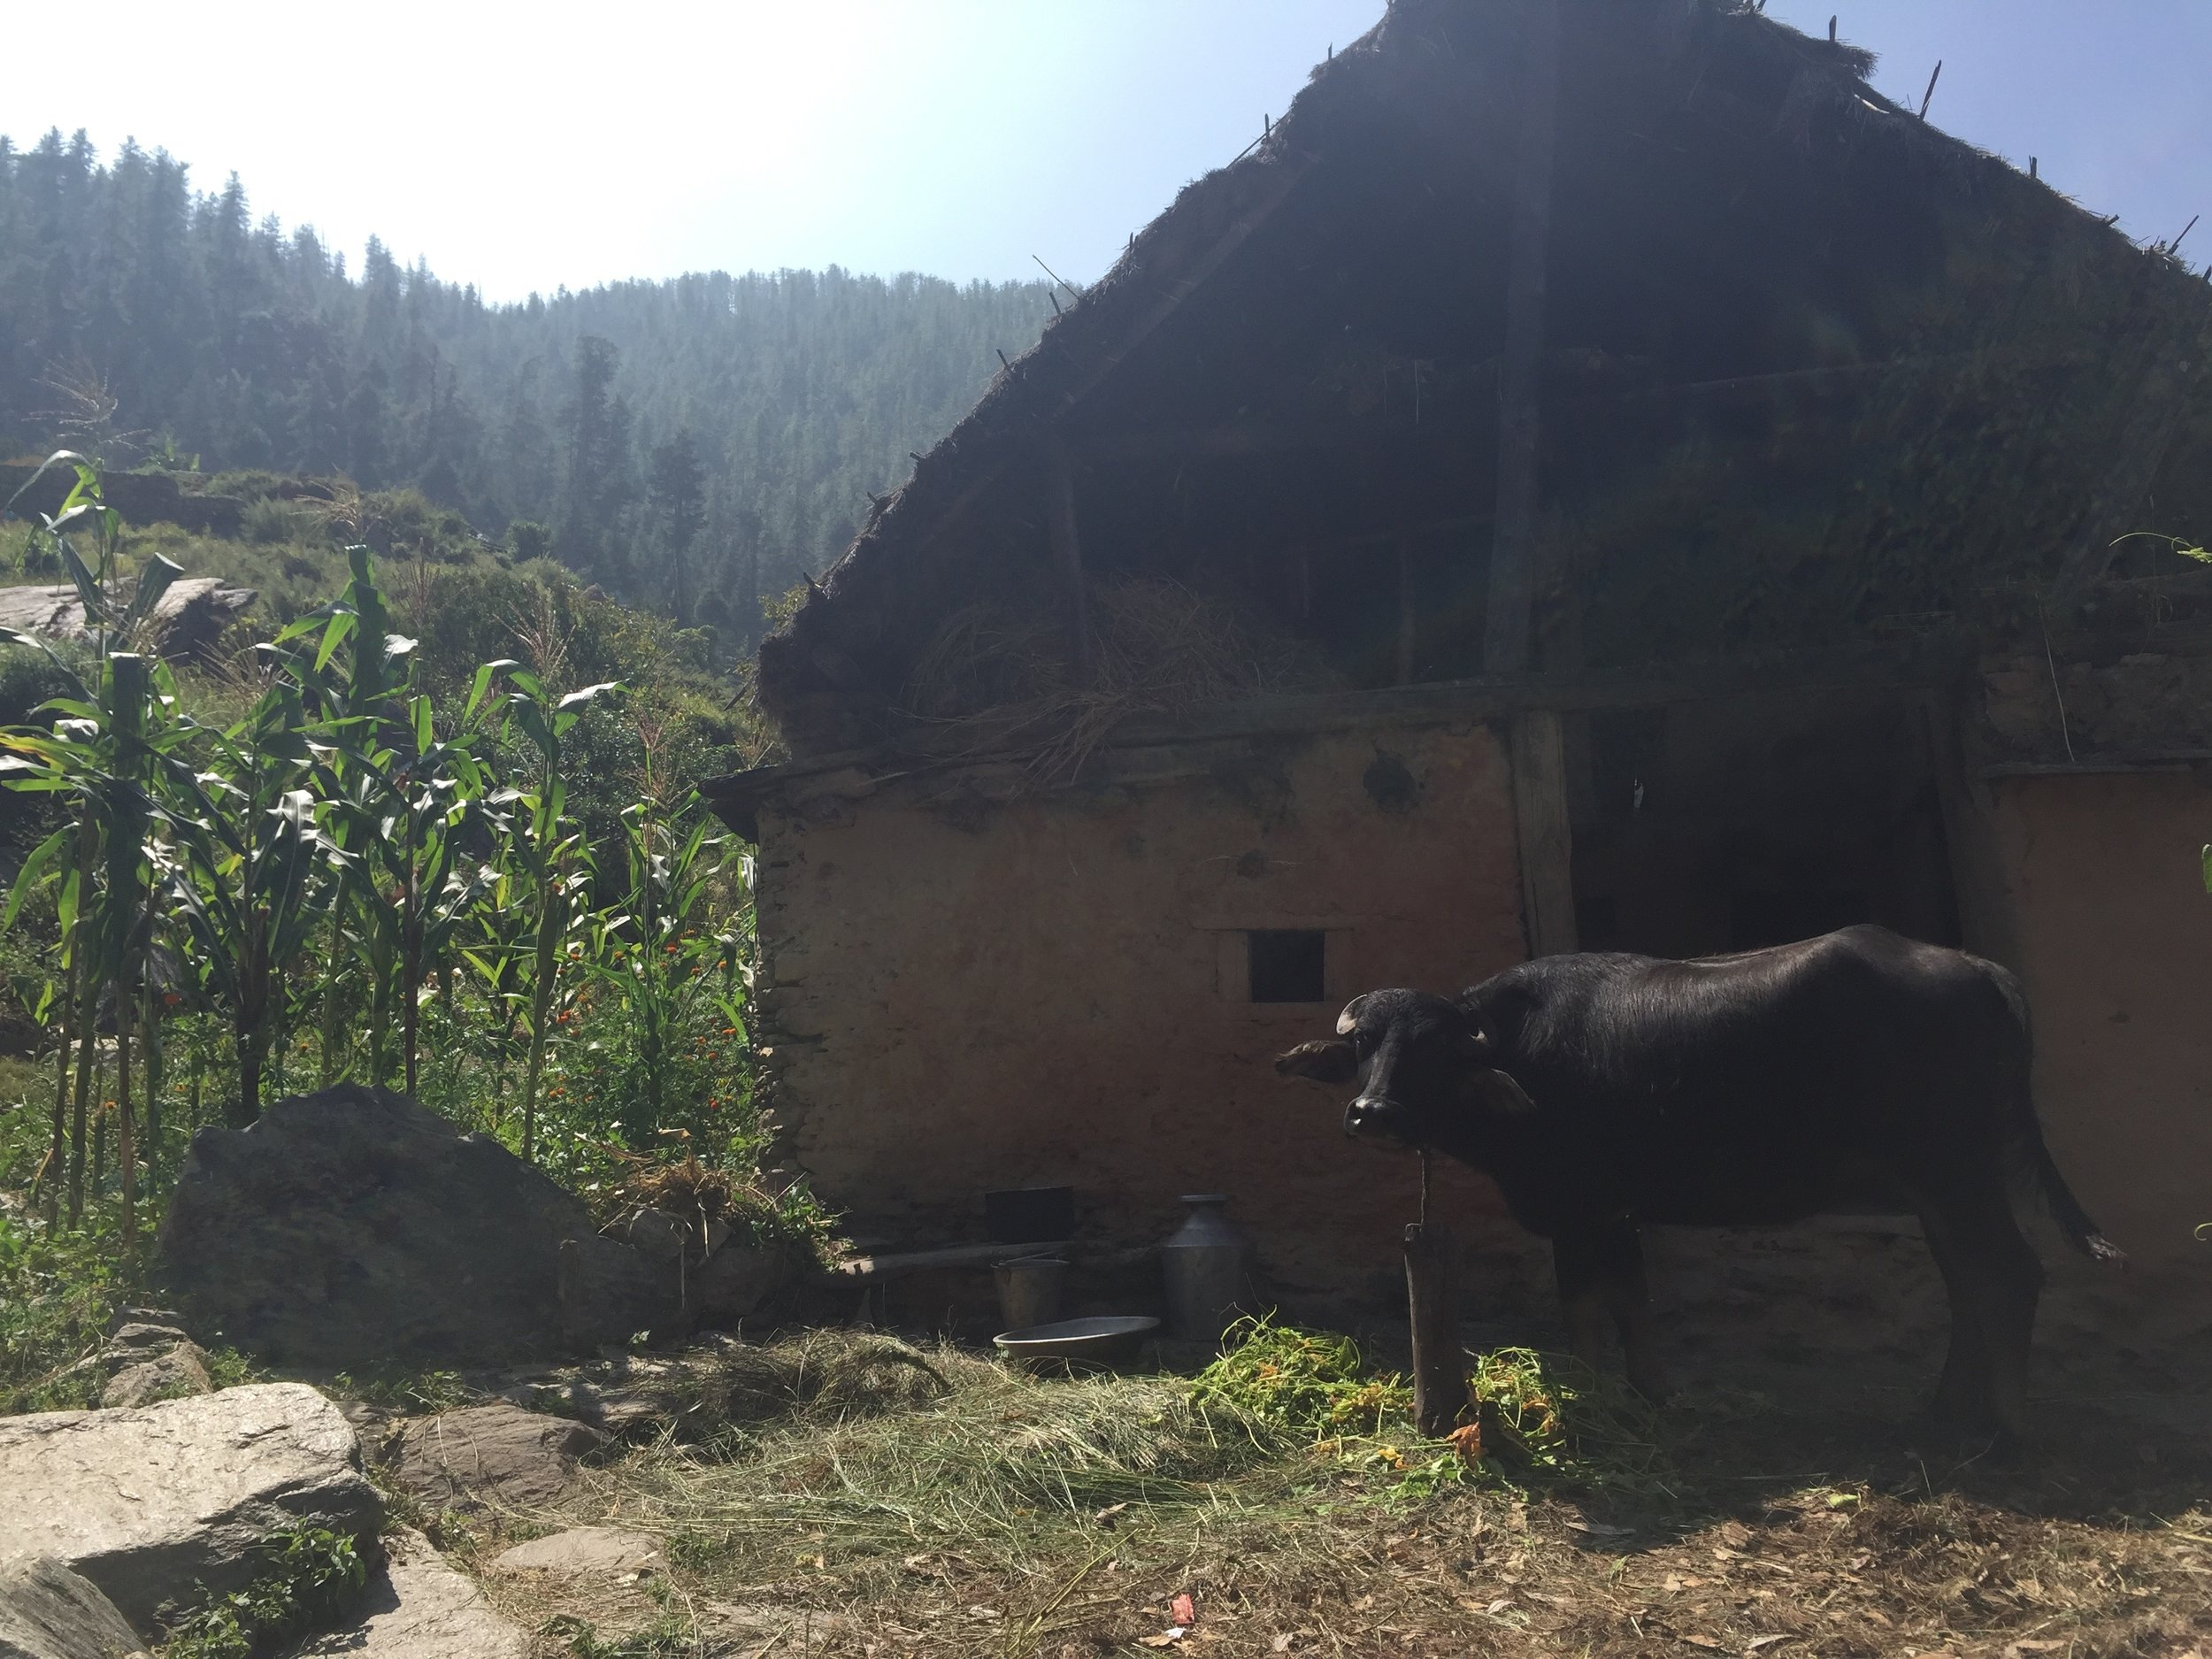 While walking through the village to say hello to students during our free time, we make sure to respect the space of the large buffalo